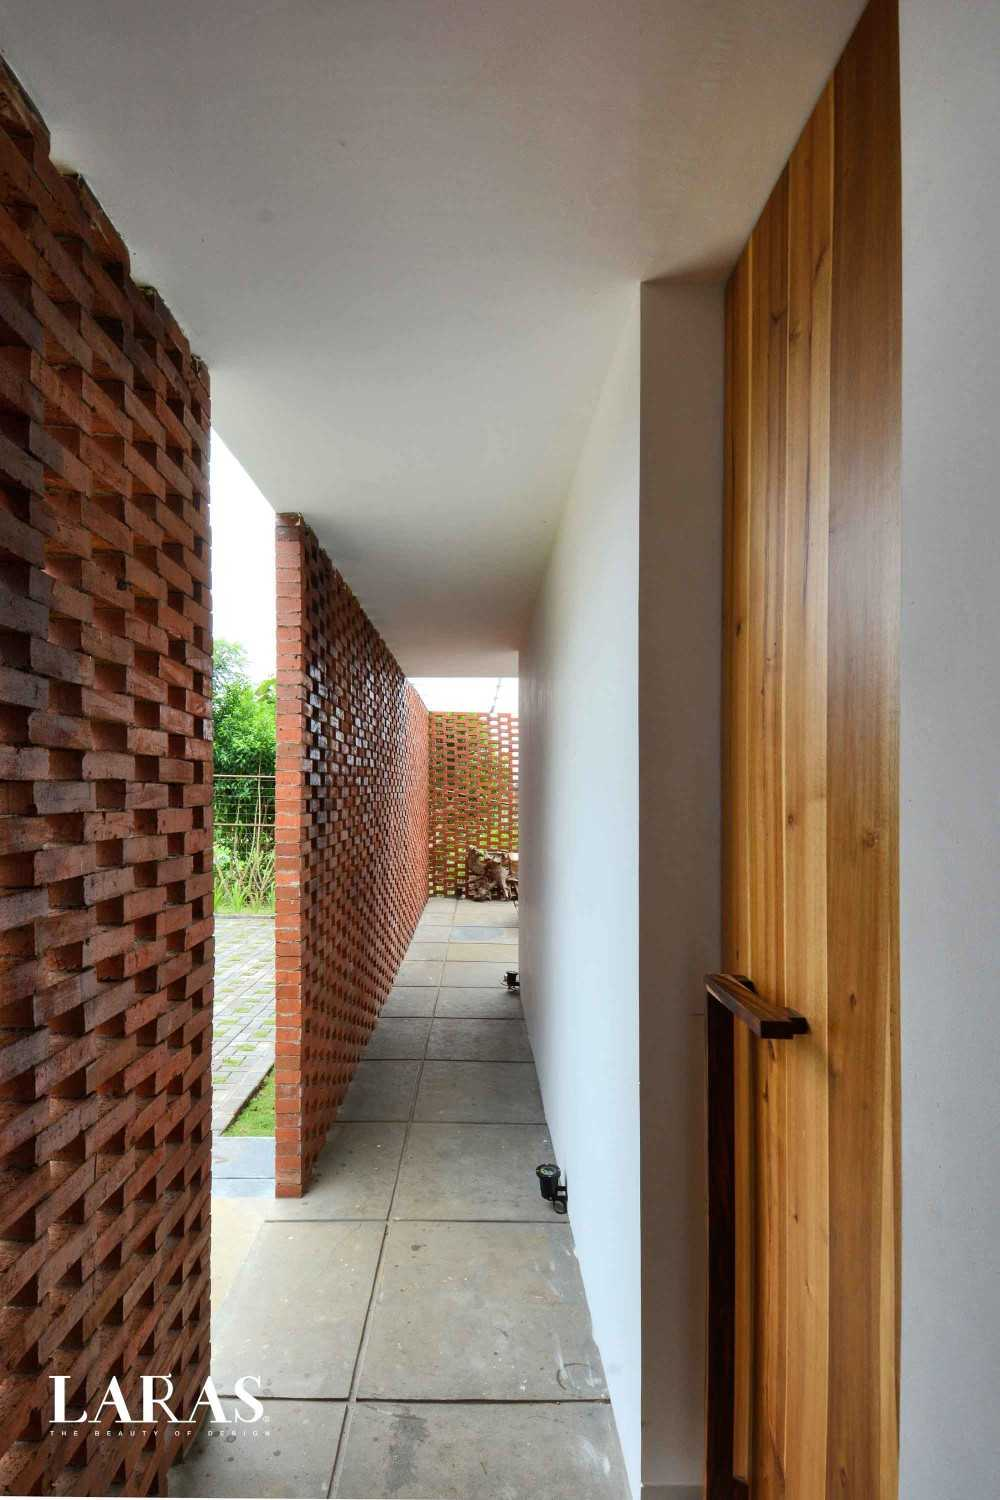 Eben White Perforated Brick House Bandung Bandung Corridor Modern,tropis 29659